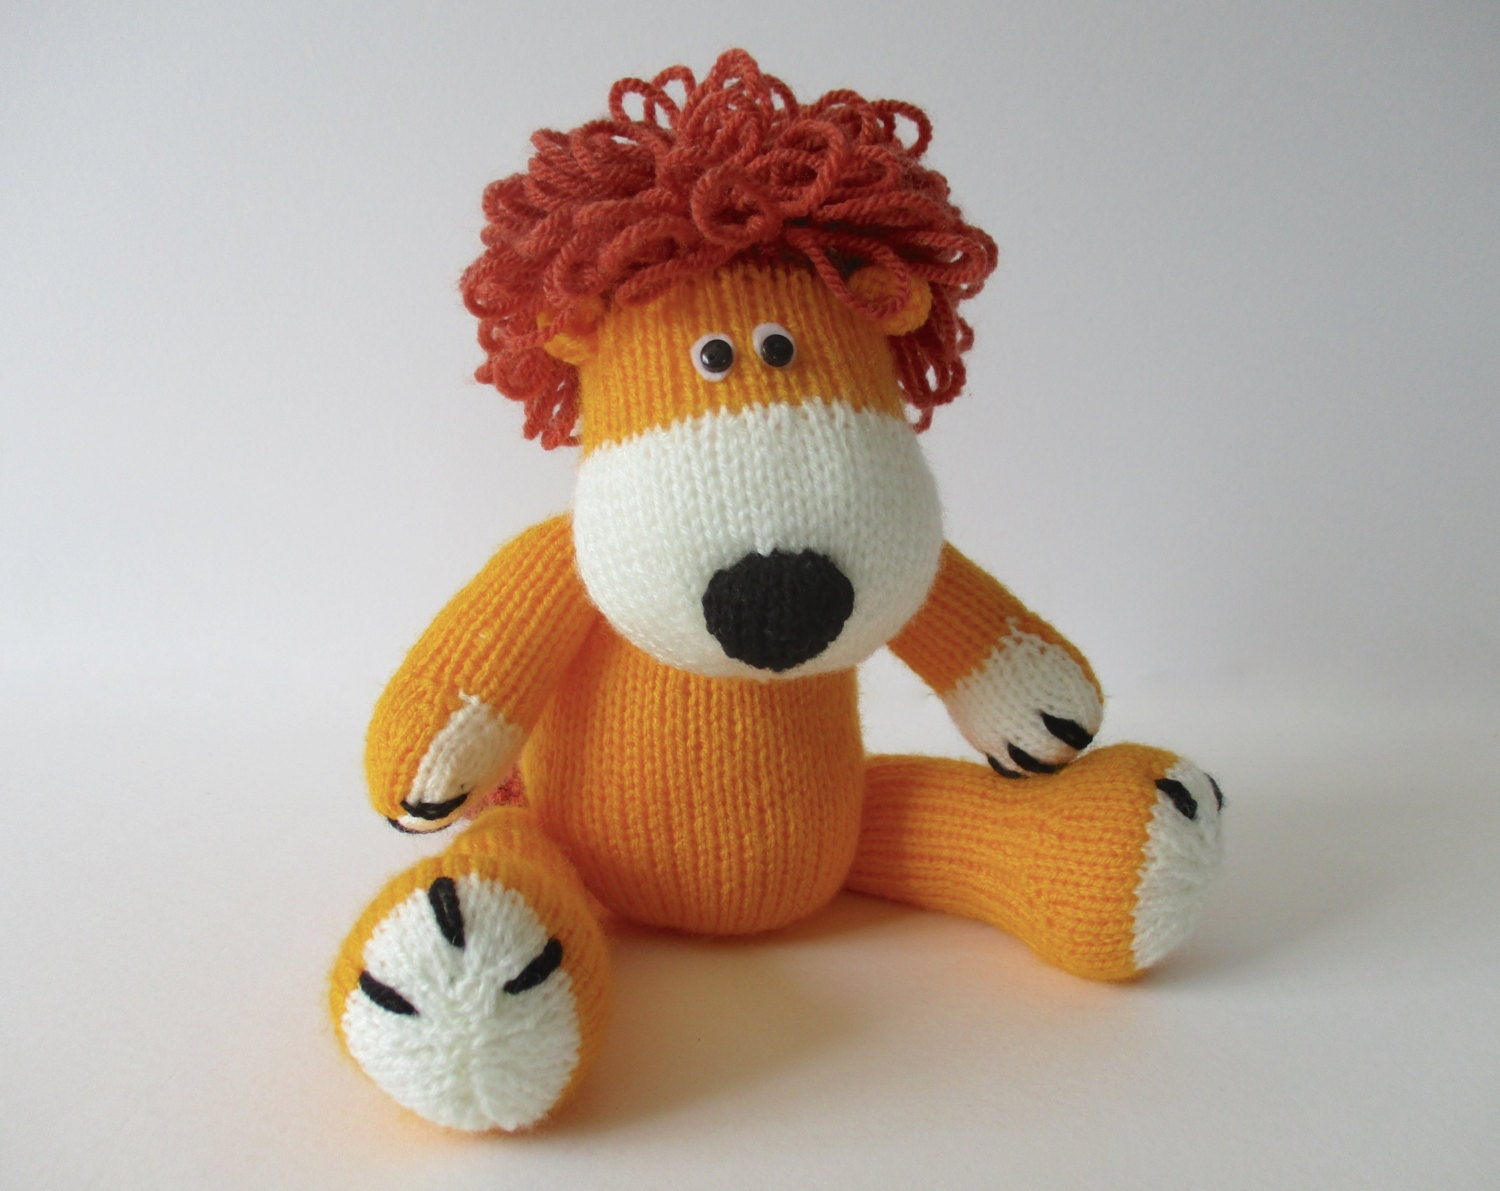 Samson the Lion toy knitting pattern